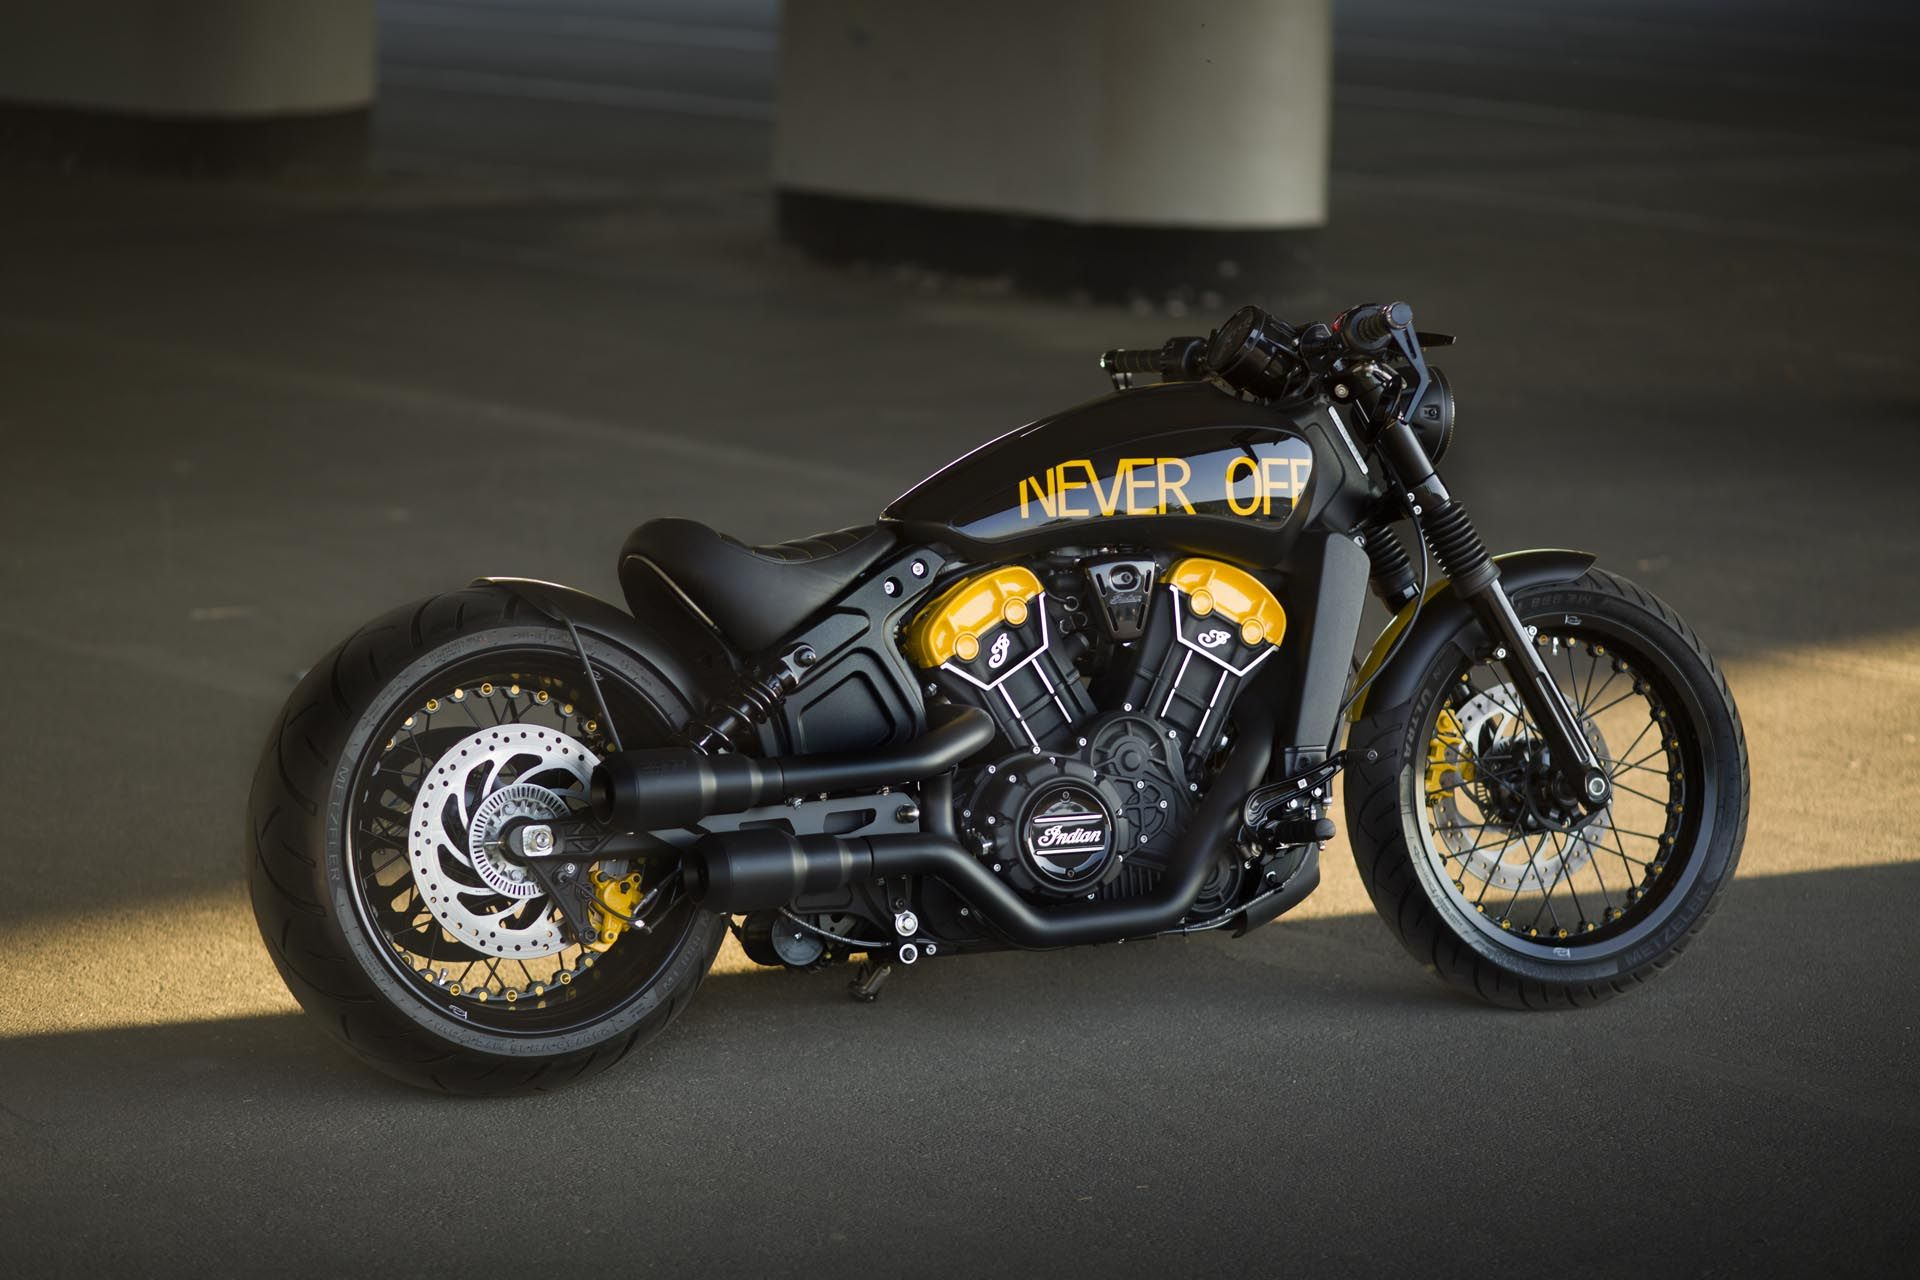 Indian Scout Bobber Never Off Indian Scout Indian Bobber Indian Scout Custom [ 1280 x 1920 Pixel ]